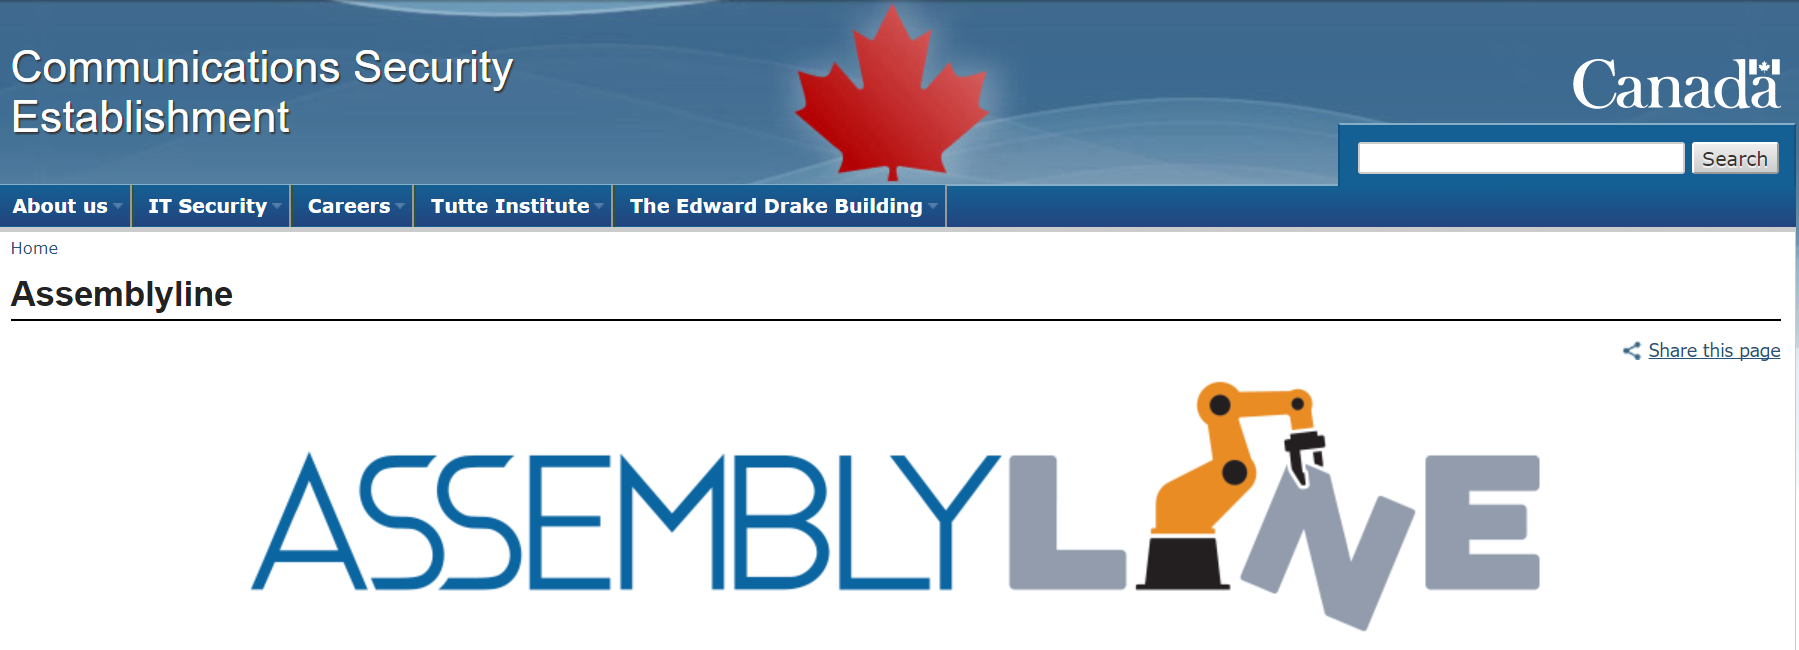 Assemblyline– Canada's CSE intelligence Agency releases its malware analysis tool